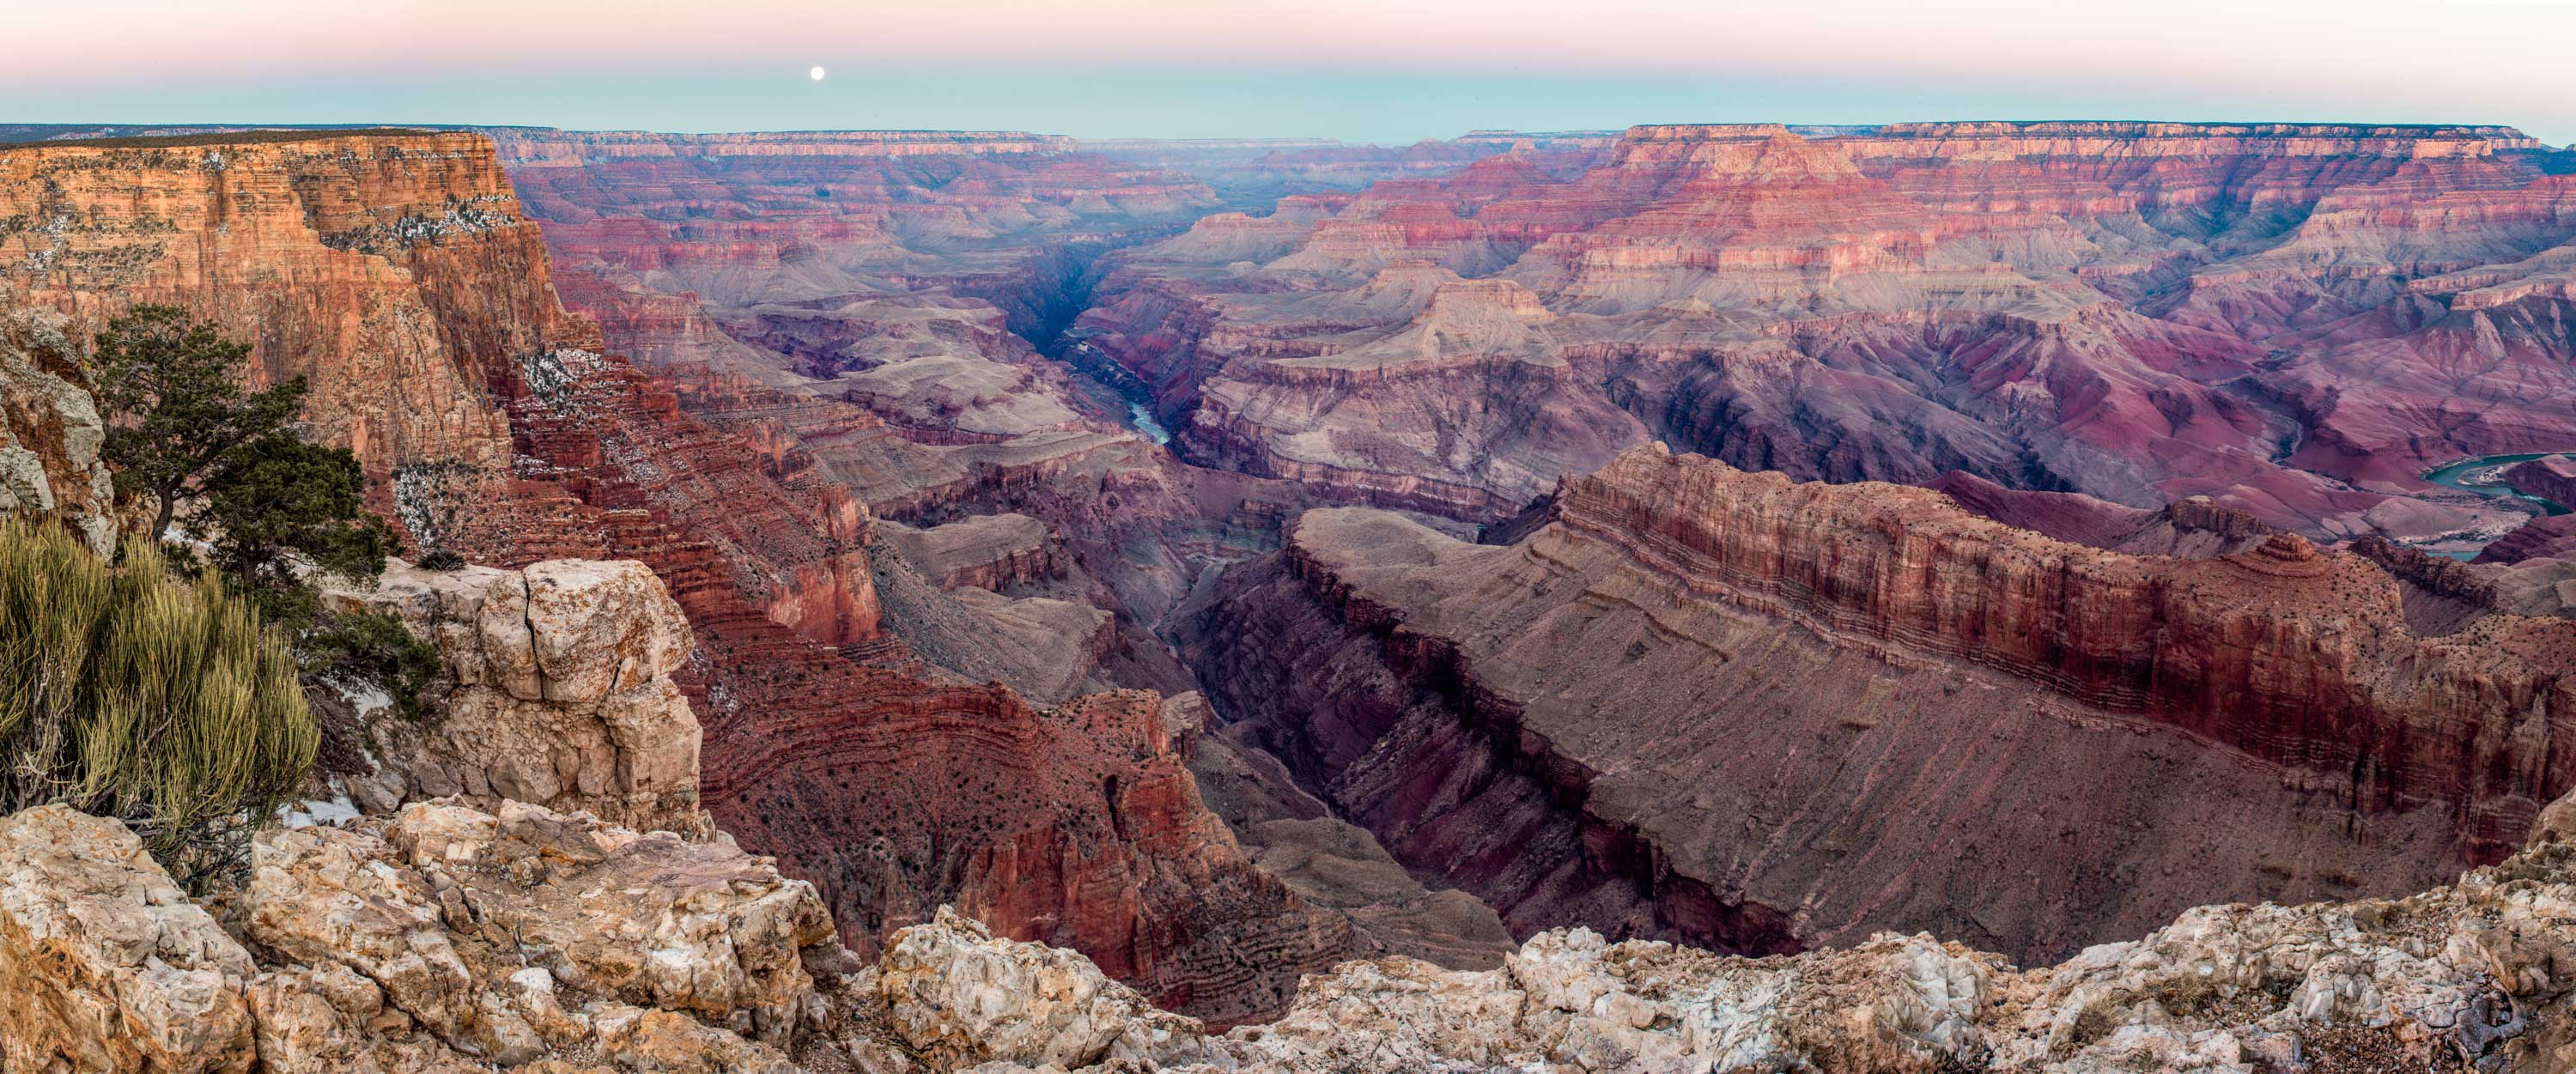 Grand_Canyon_Moonset-1-Edit-2